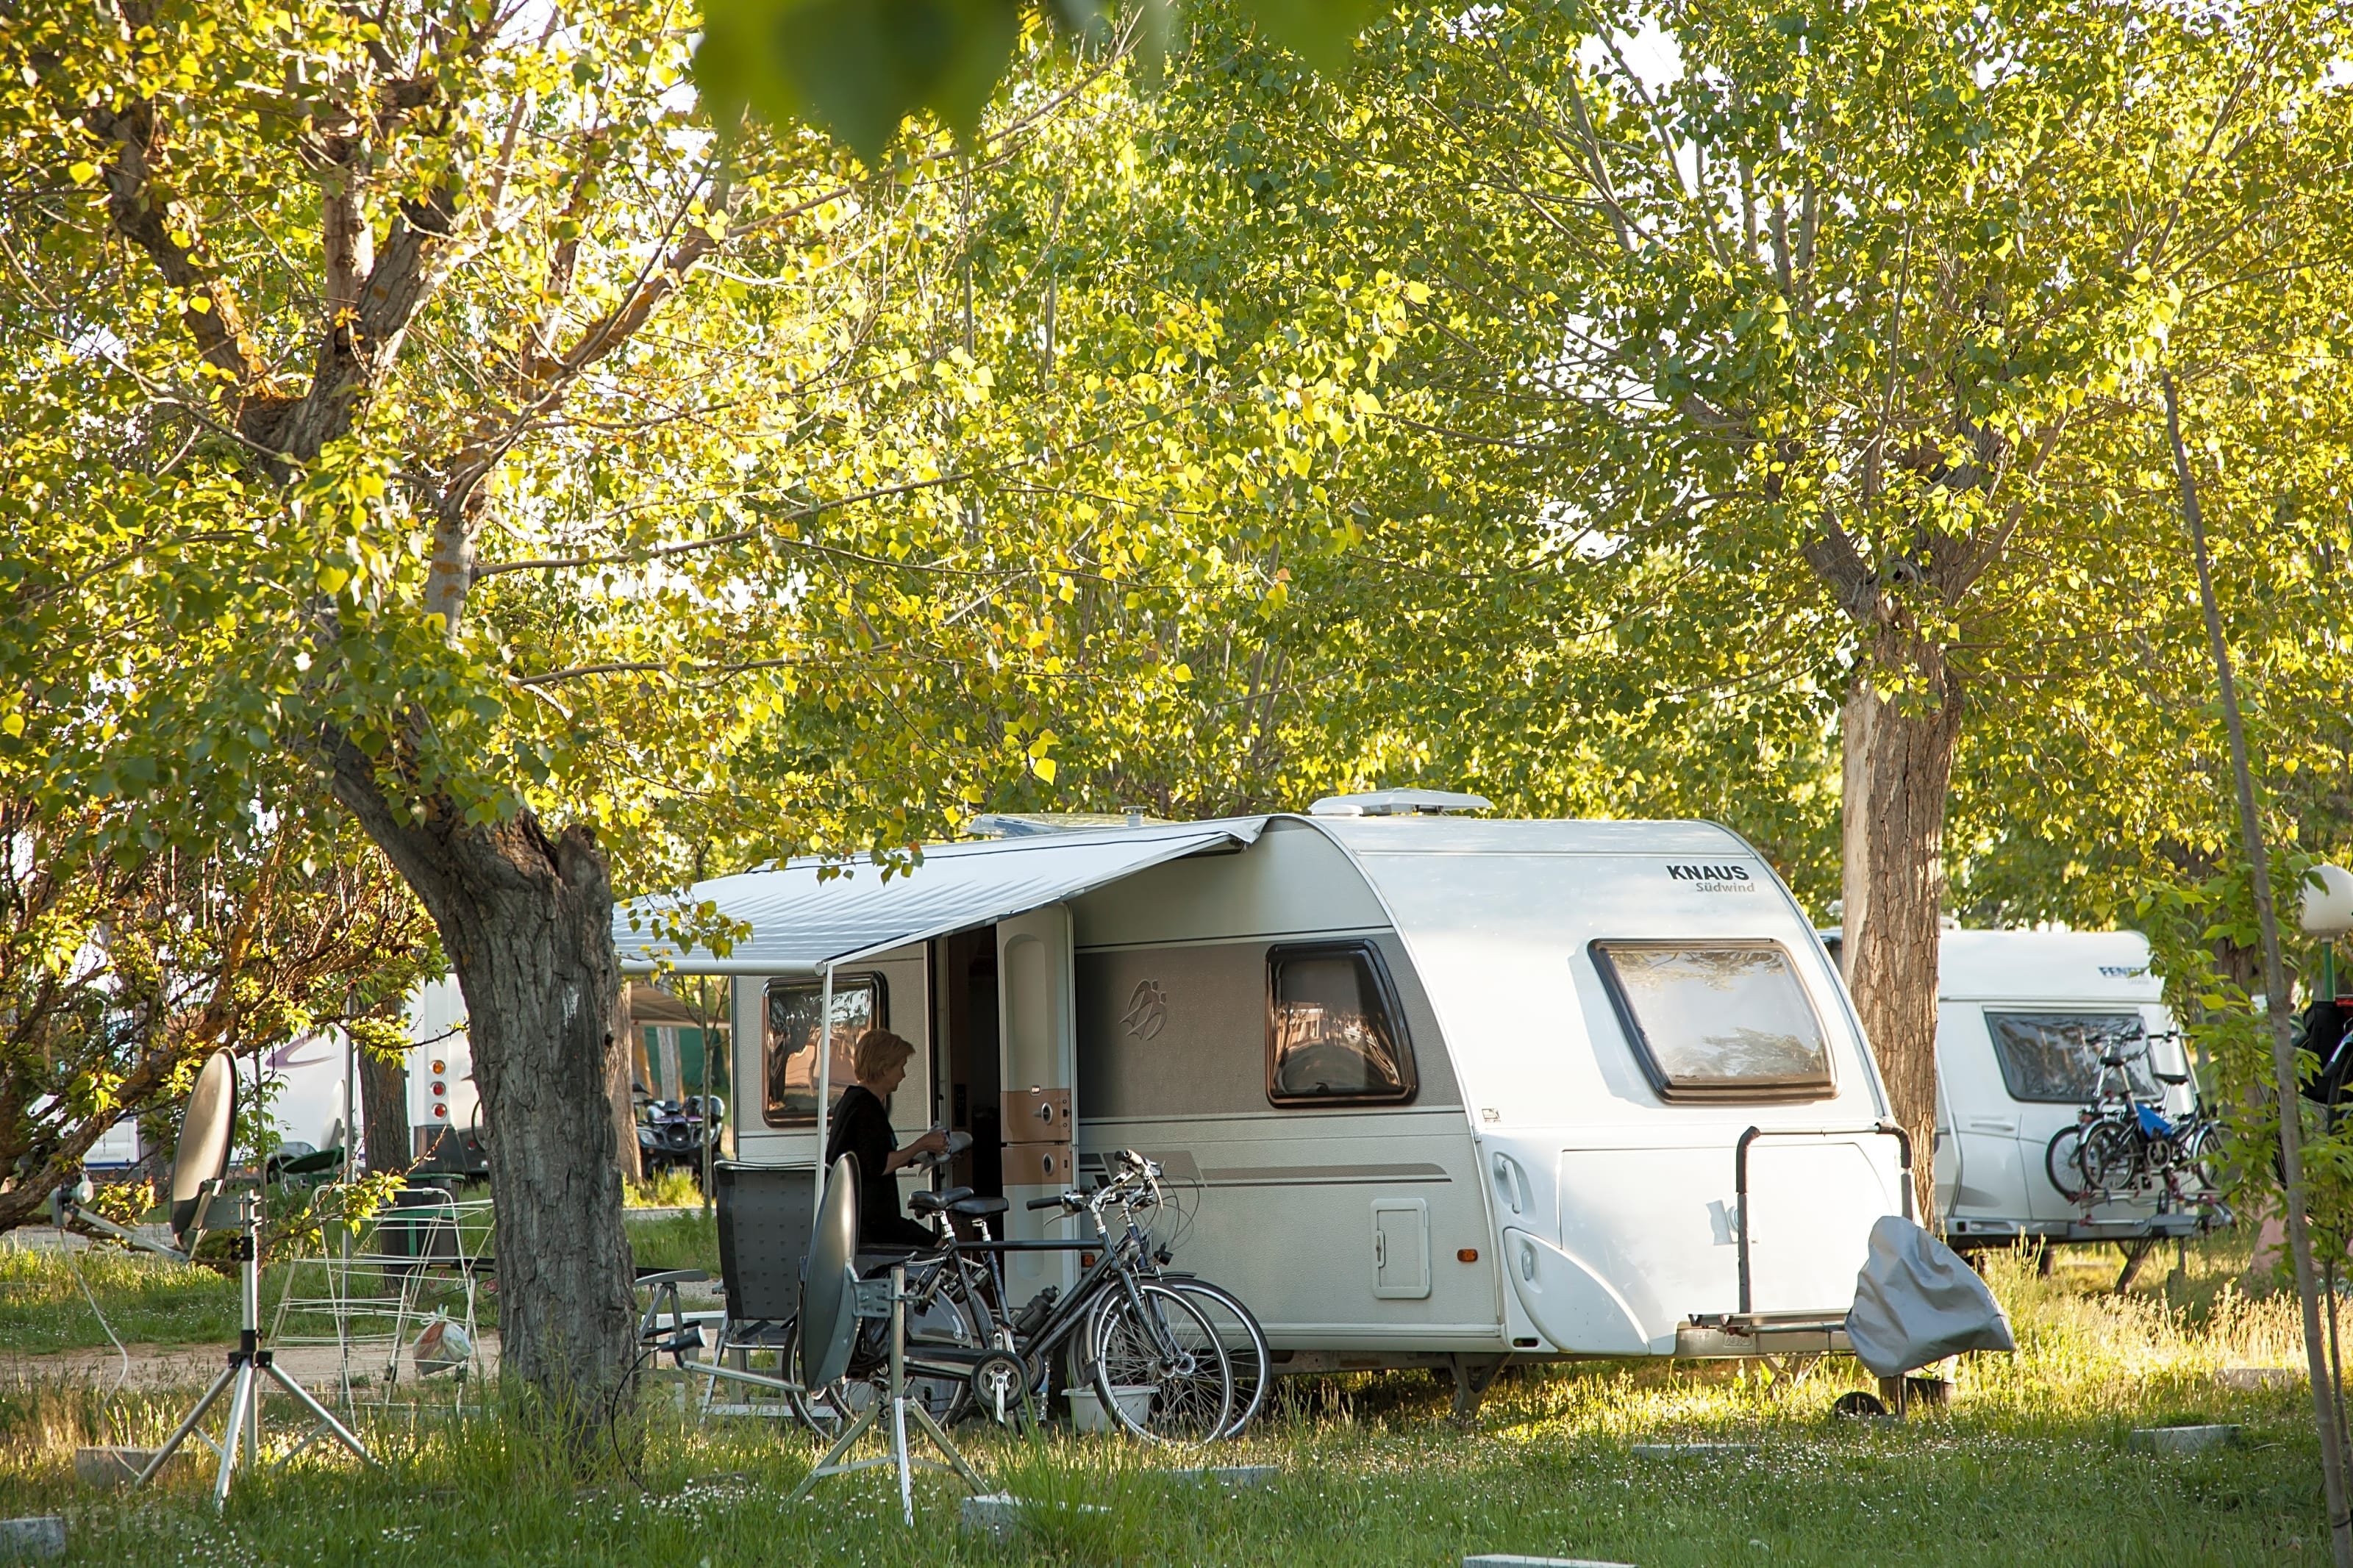 Camping Regio Santa Marta De Tormes Updated 2019 Prices Pitchup